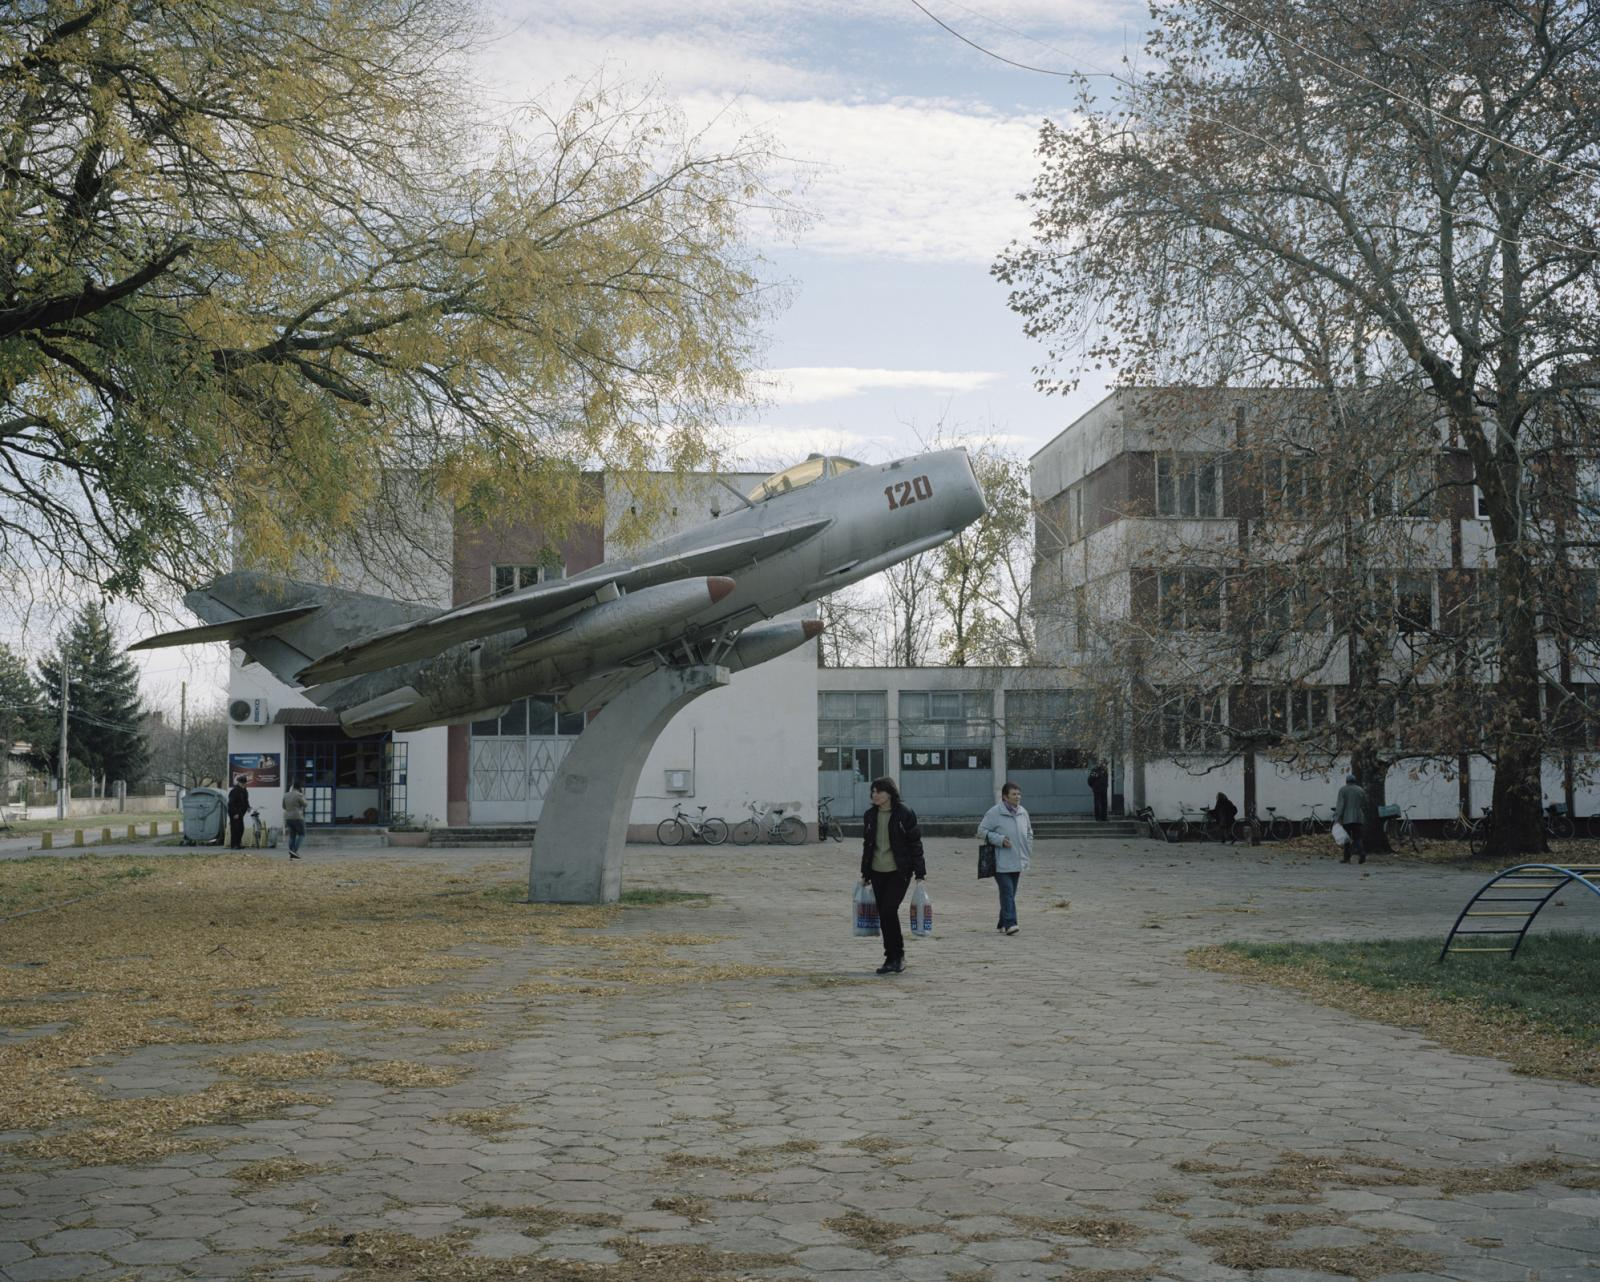 Bulgaria, Bardaski Geran. A MIG plane, Russian Cold War jet fighter aircraft in front of the Town Hall. In Bulgaria are still present several war-related monuments. These Russian Military monuments, standing in the places where they are displayed, are slowly deteriorated by the weather recalling an era that already ended. Most probably if tomorrow they would desassear the people wouldn't notice the difference.